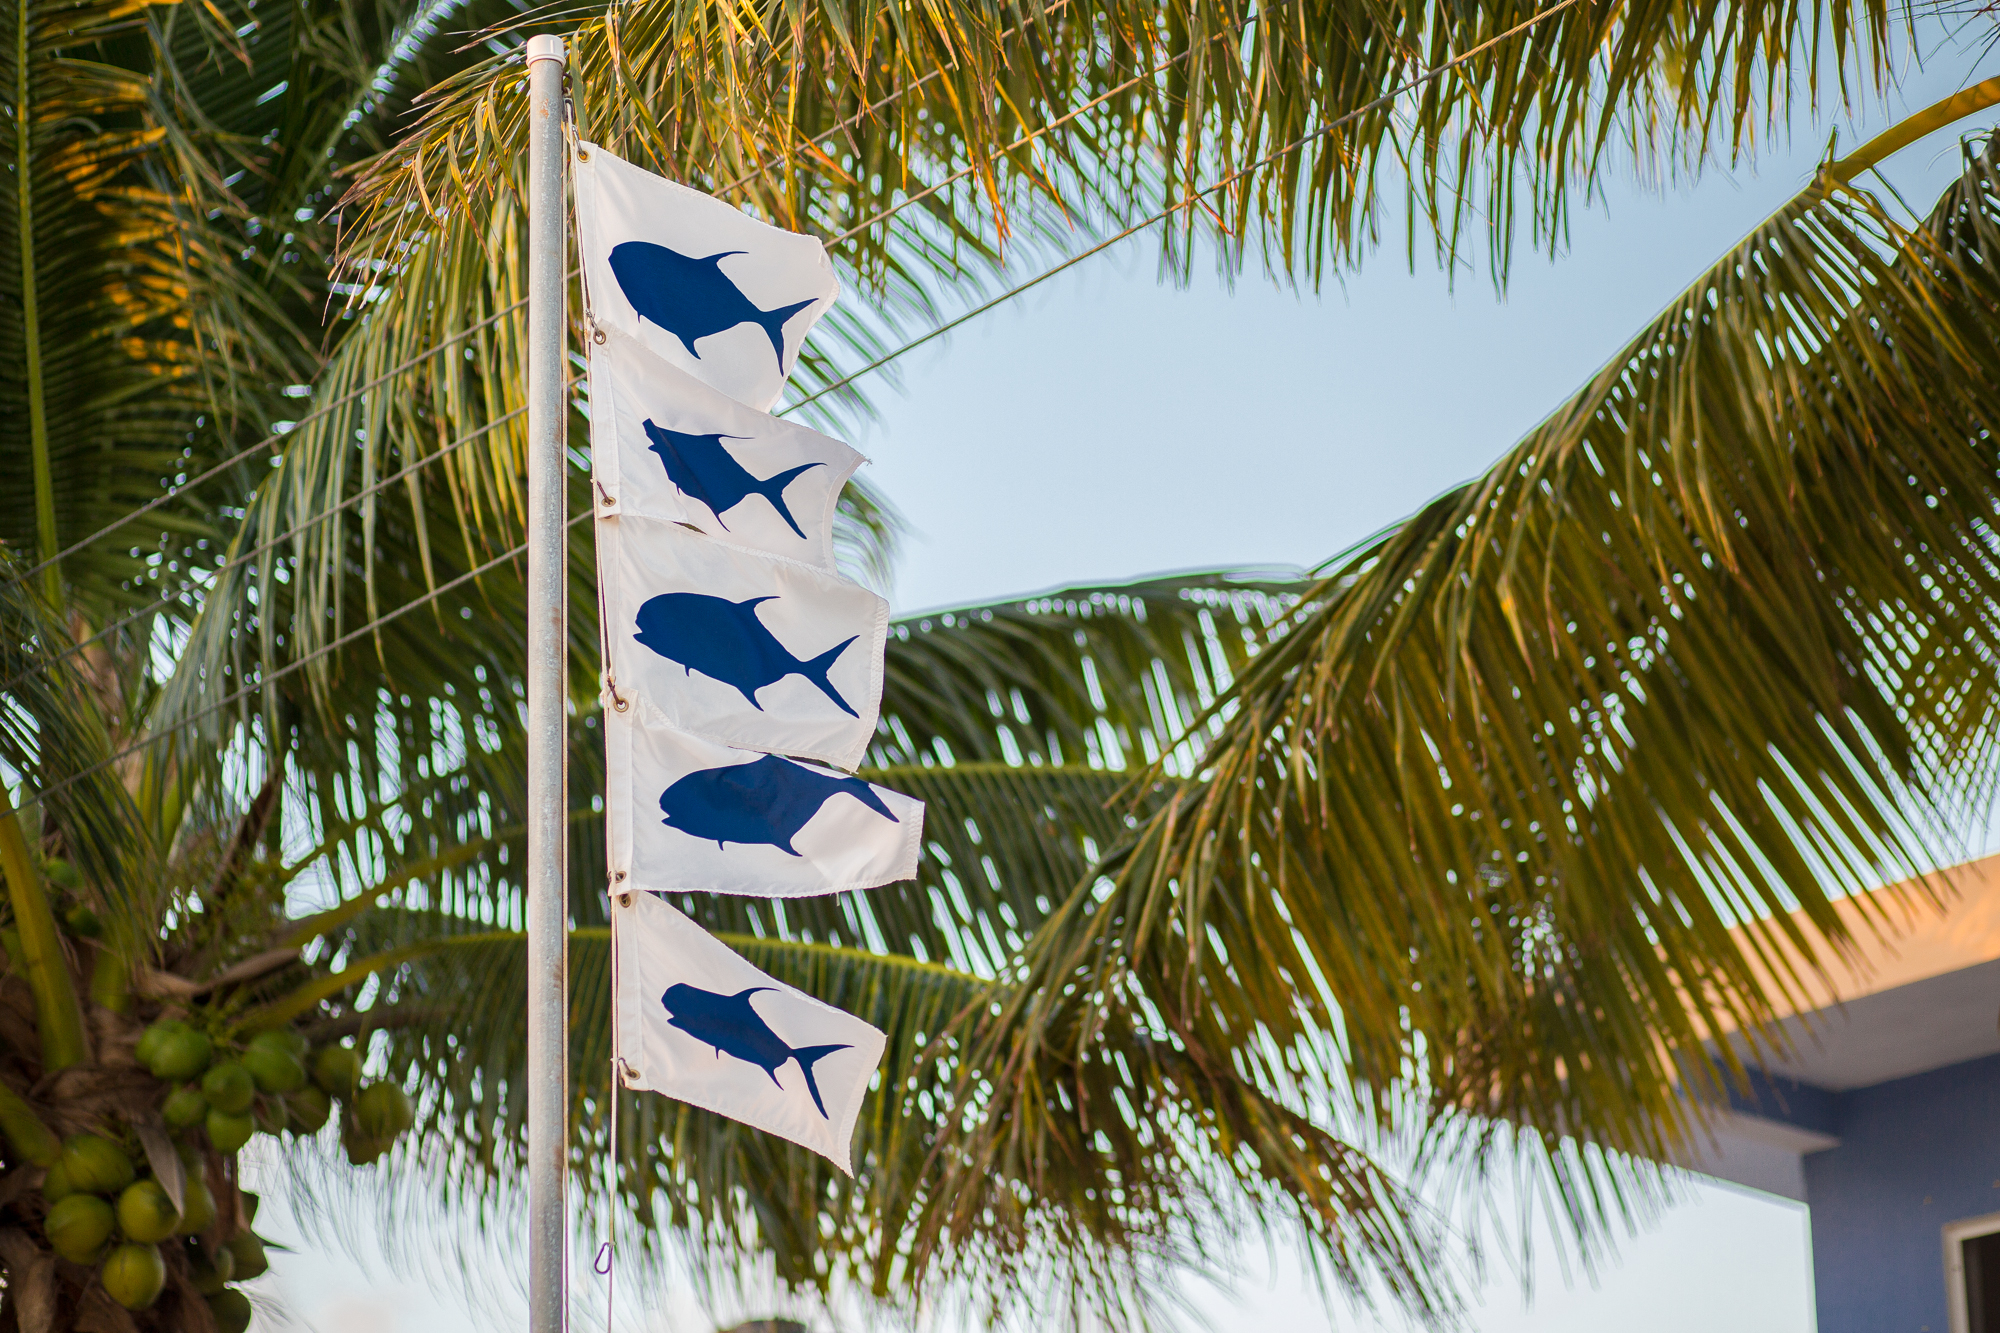 Guests that land a permit hang a flag on the flagpole that adorns the beach in front of the club. With conditions back to normal, 5 flags are hung and admired on day six (photo: Chad Shmukler).